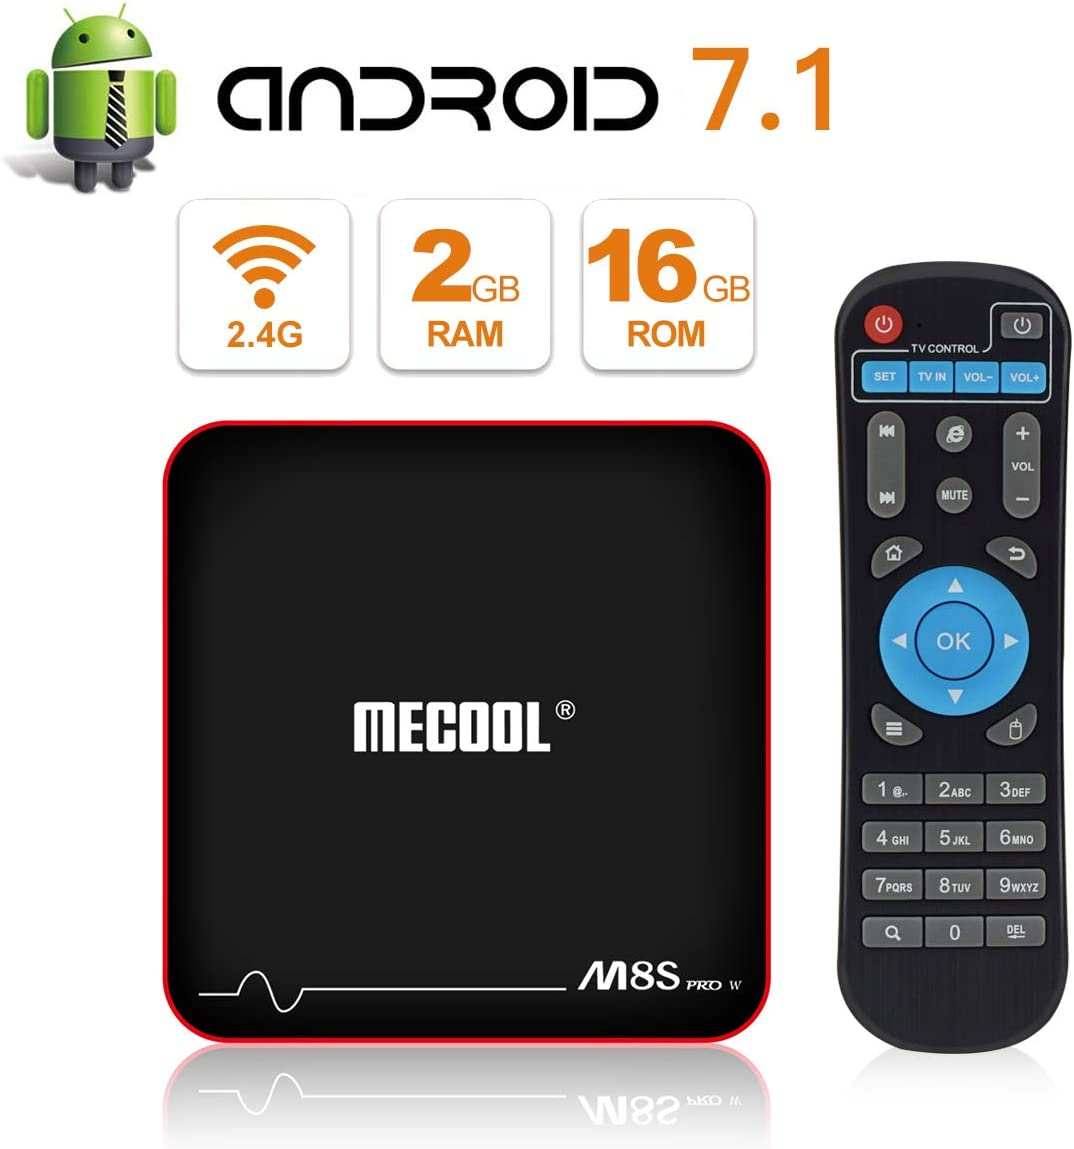 MECOOL M8S Pro W TV Box Android 7.1.2 with 2GB RAM/16GB ROM ...